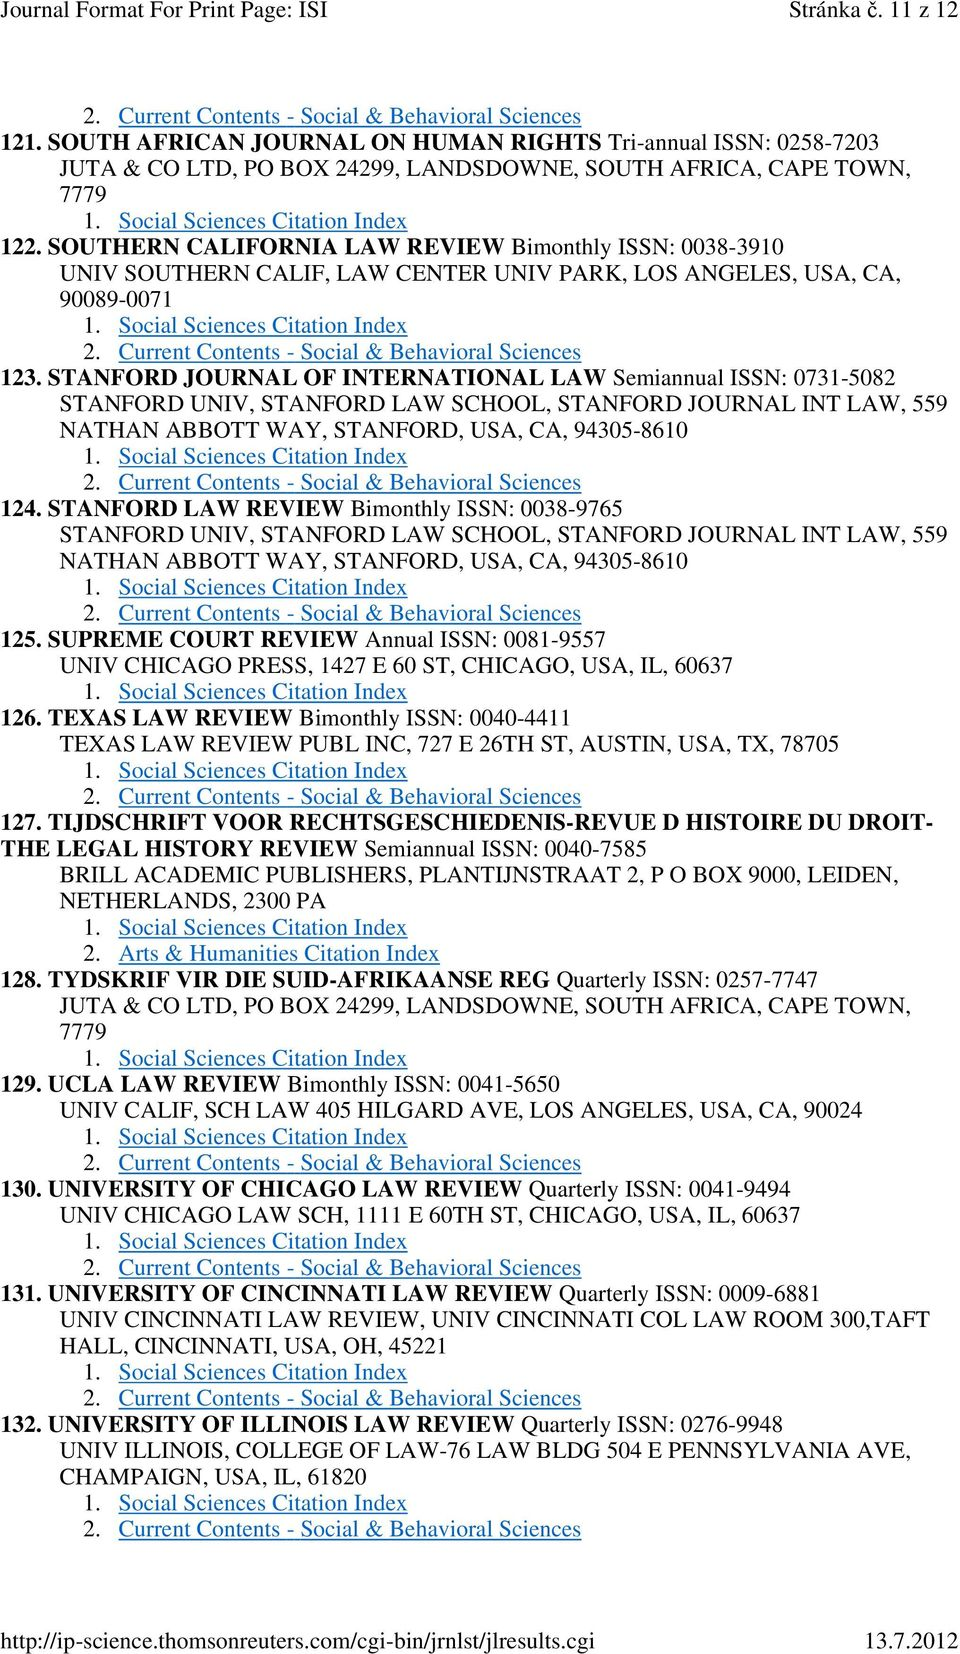 STANFORD JOURNAL OF INTERNATIONAL LAW Semiannual ISSN: 0731-5082 STANFORD UNIV, STANFORD LAW SCHOOL, STANFORD JOURNAL INT LAW, 559 NATHAN ABBOTT WAY, STANFORD, USA, CA, 94305-8610 124.